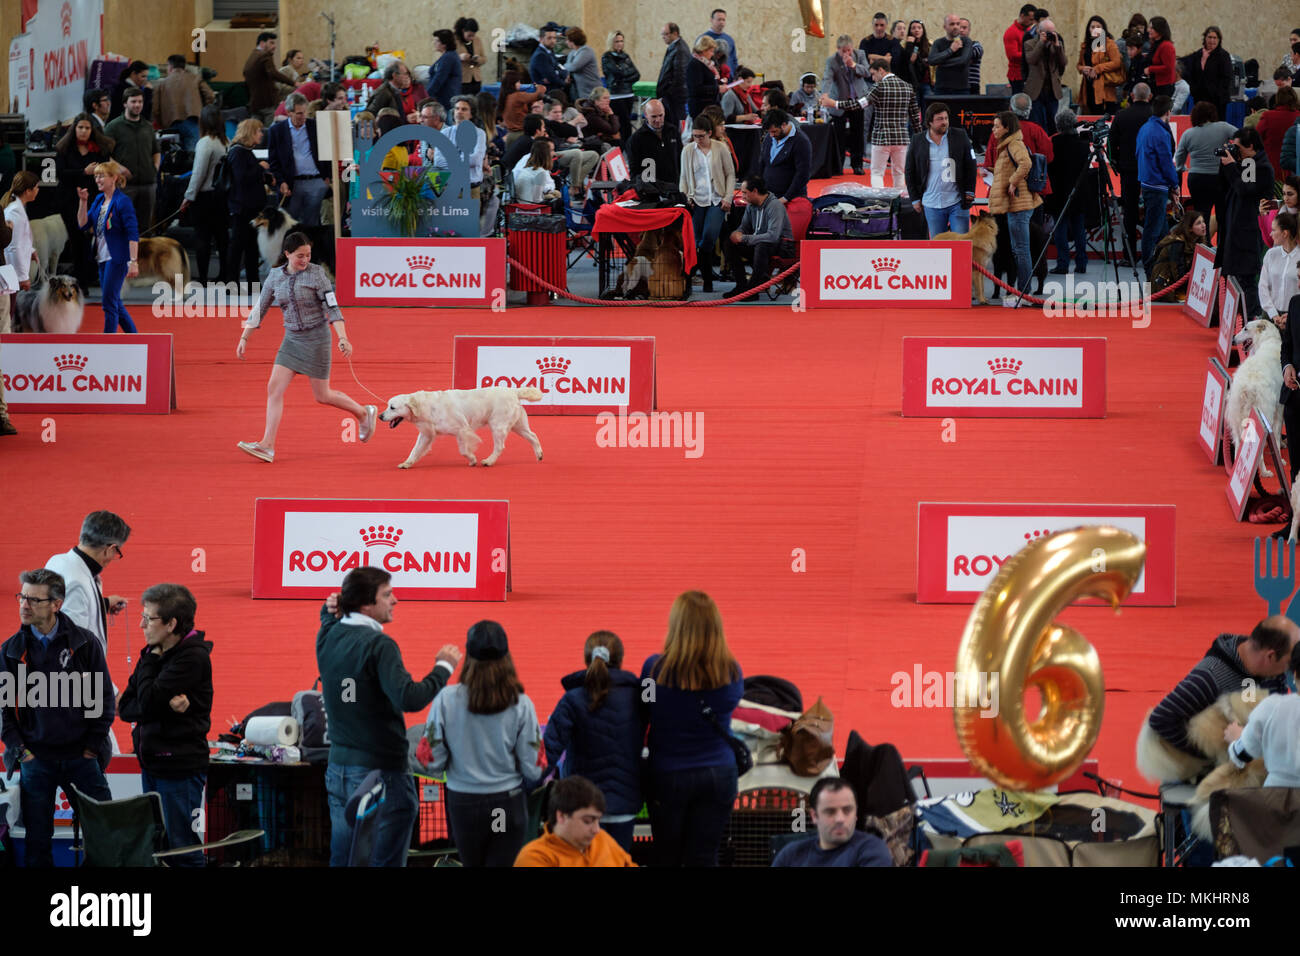 Overhead view of a woman walking her Golden Retriever during a dog show - Stock Image